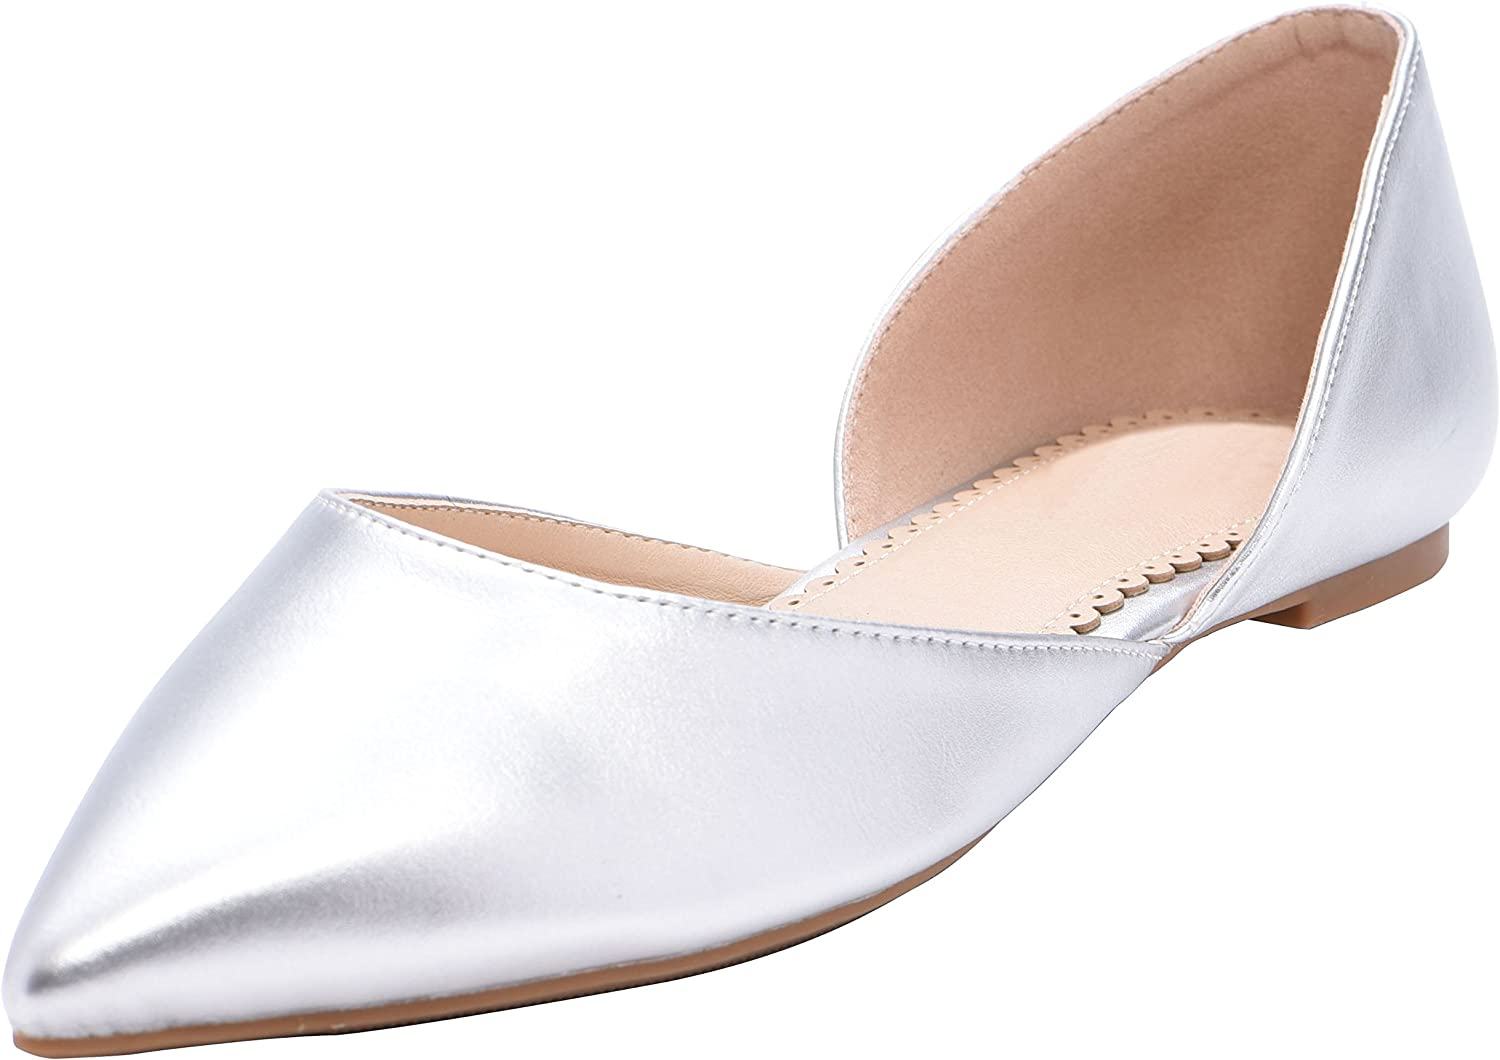 Cambridge Select Women's Closed Pointed Toe D'Orsay Slip-On Ballet Flat